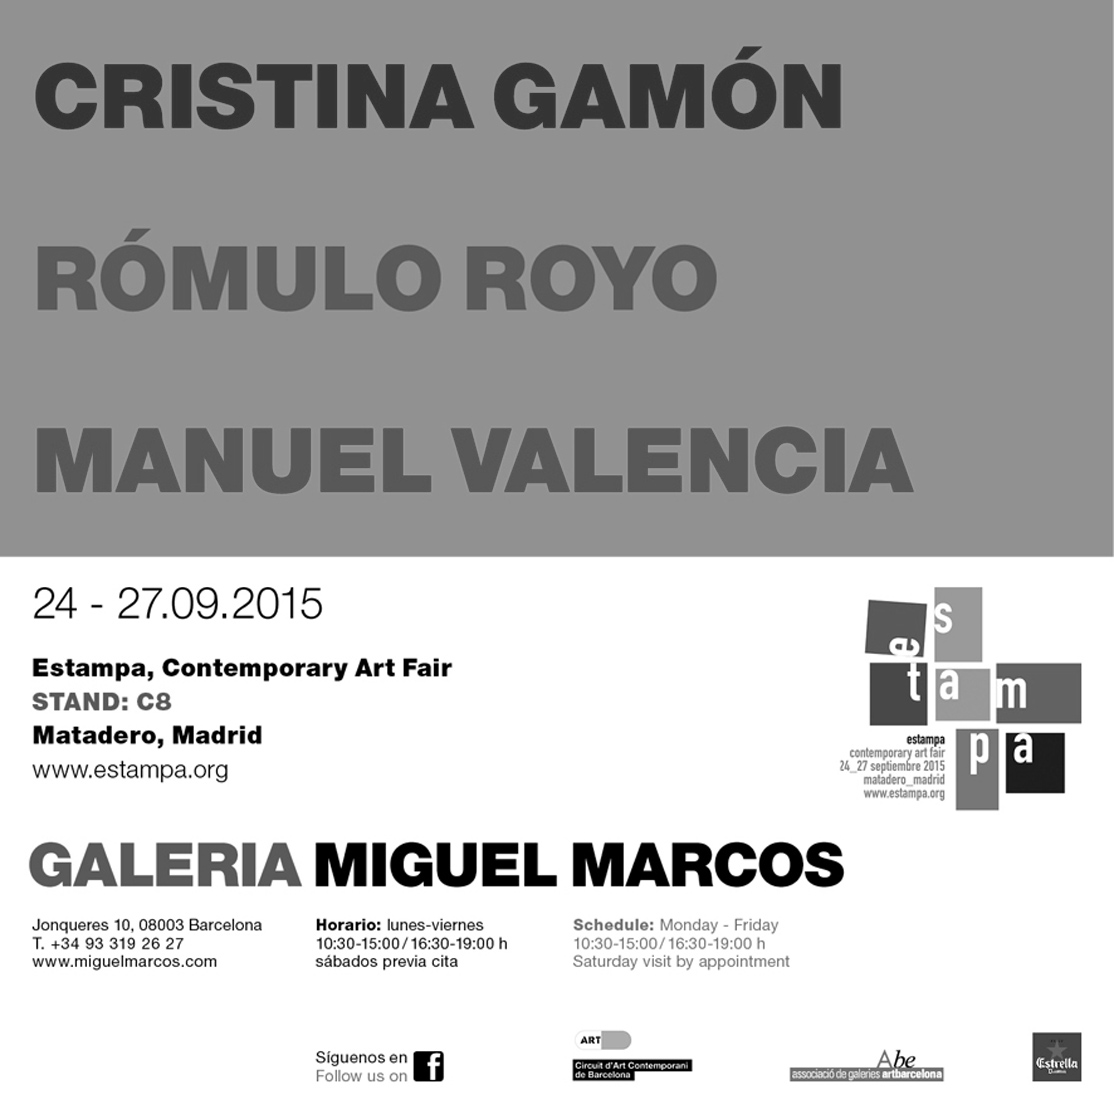 Miguel Marcos Gallery Invitation Card - Estampa Contemporary Art Fair 2015 Romulo Royo